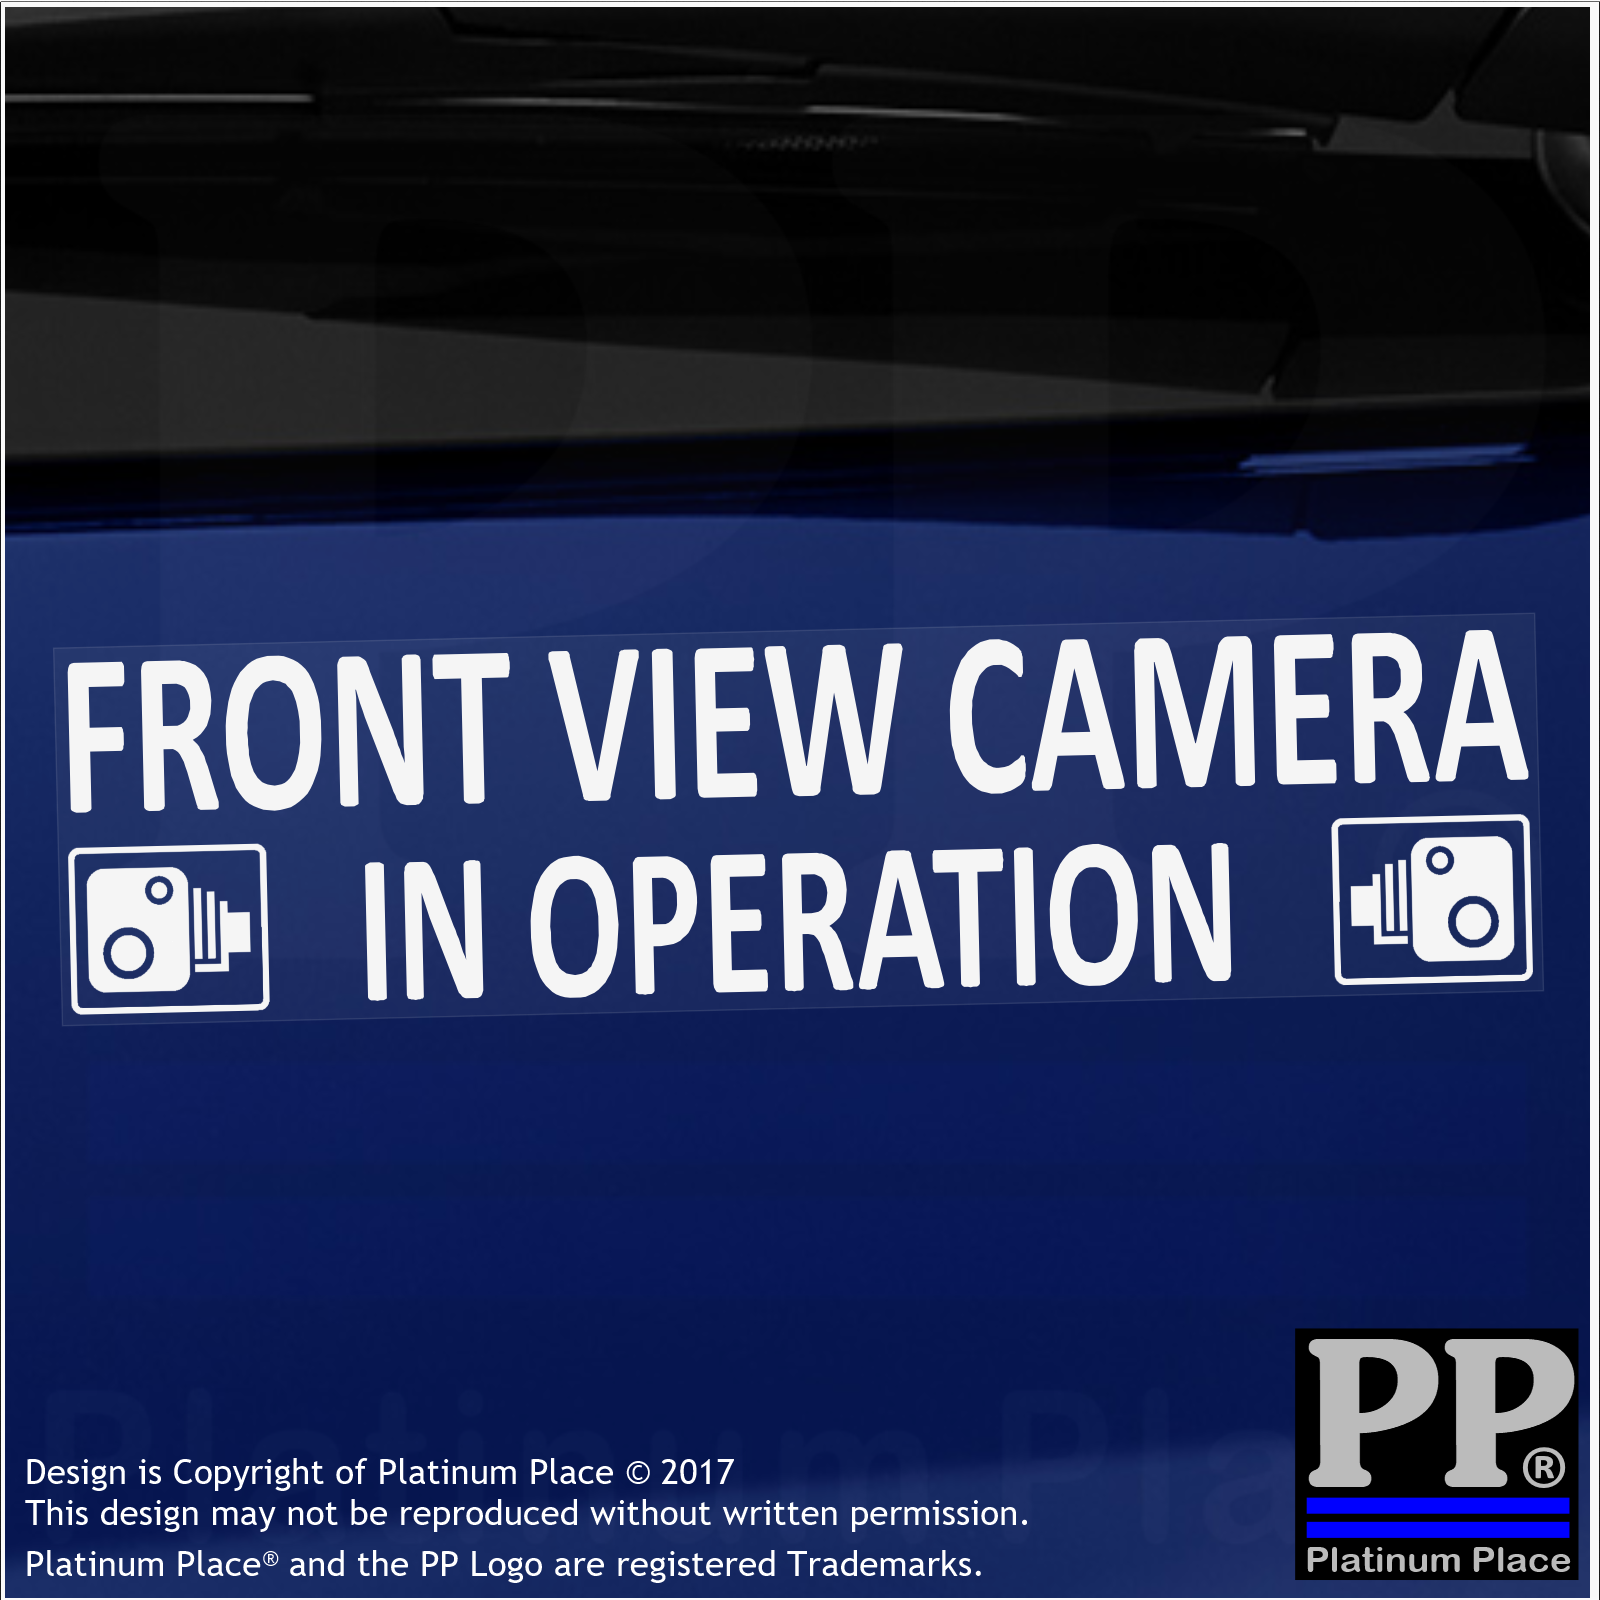 1 x Front View Camera In Operation Stickers-EXTERNAL CCTV